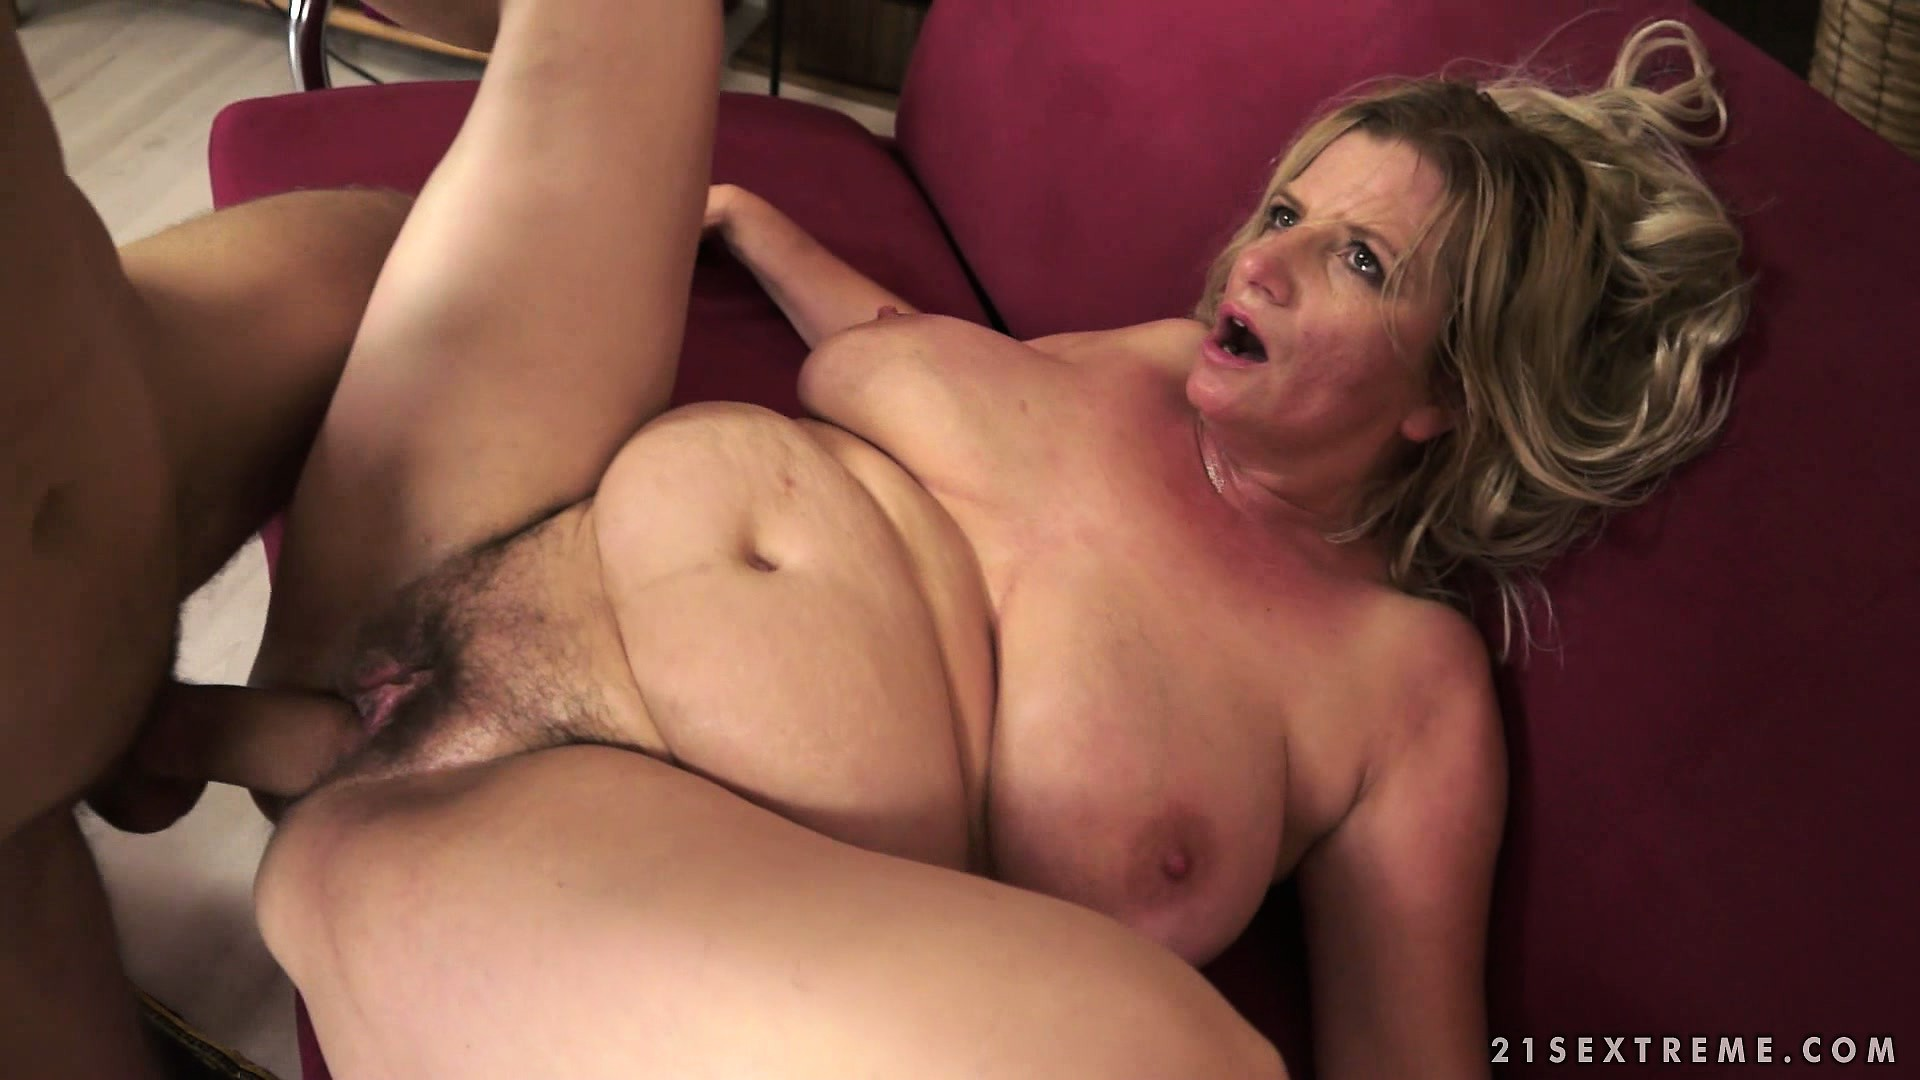 Sara jay doing anal